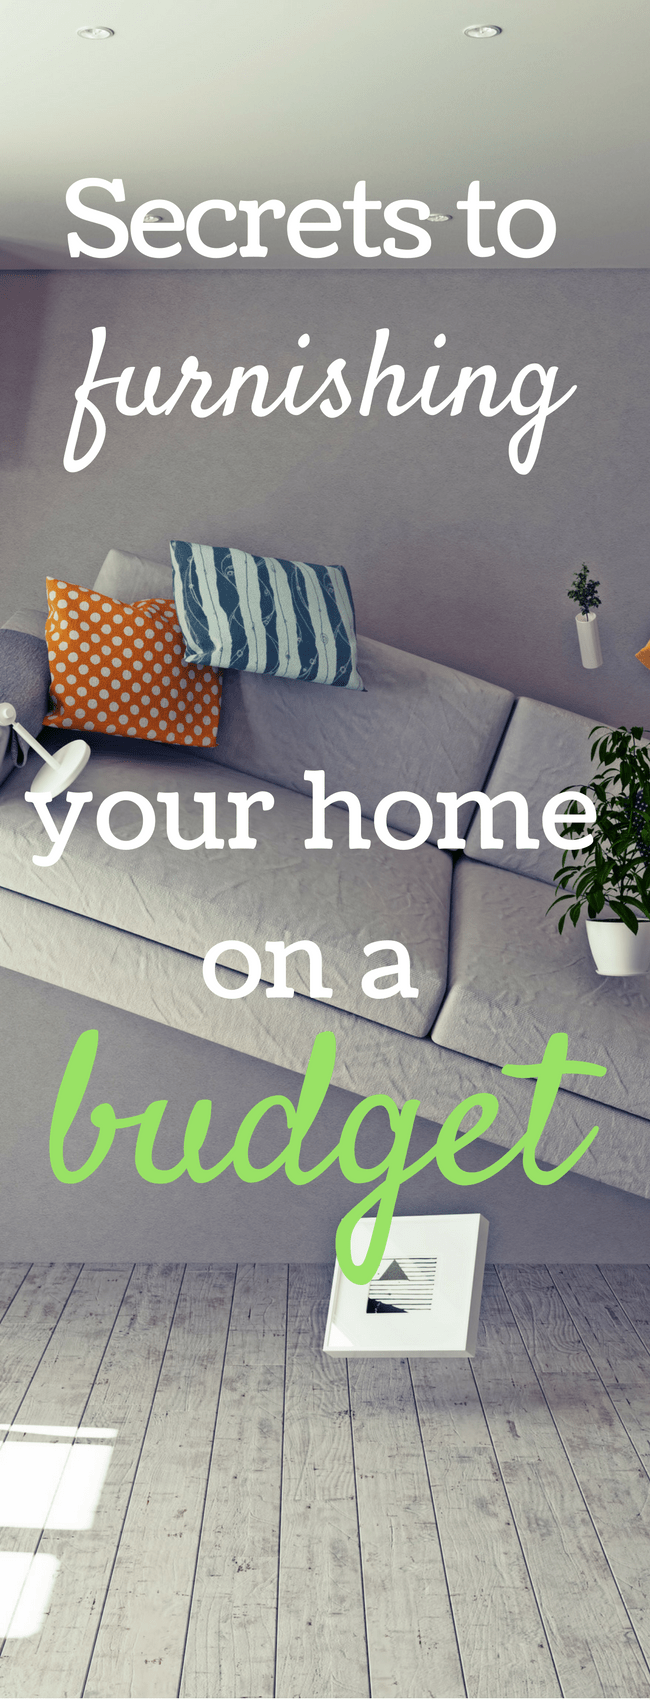 Secrets to furnishing your home on a budget! via @clarkscondensed